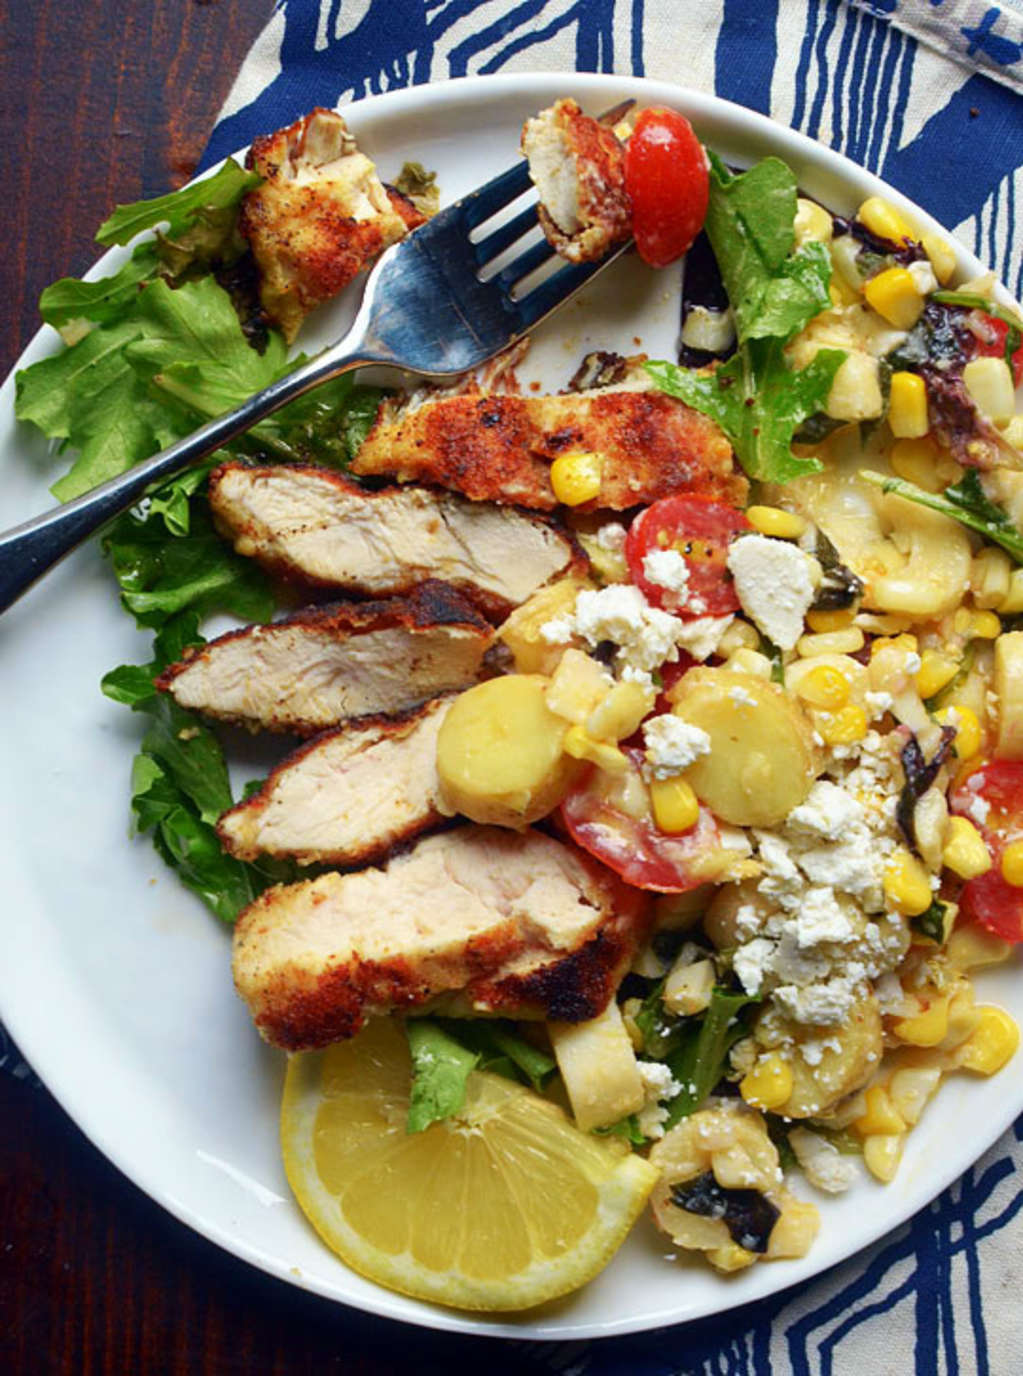 10 Glorious Summer Salads To Celebrate Tomatoes and Corn